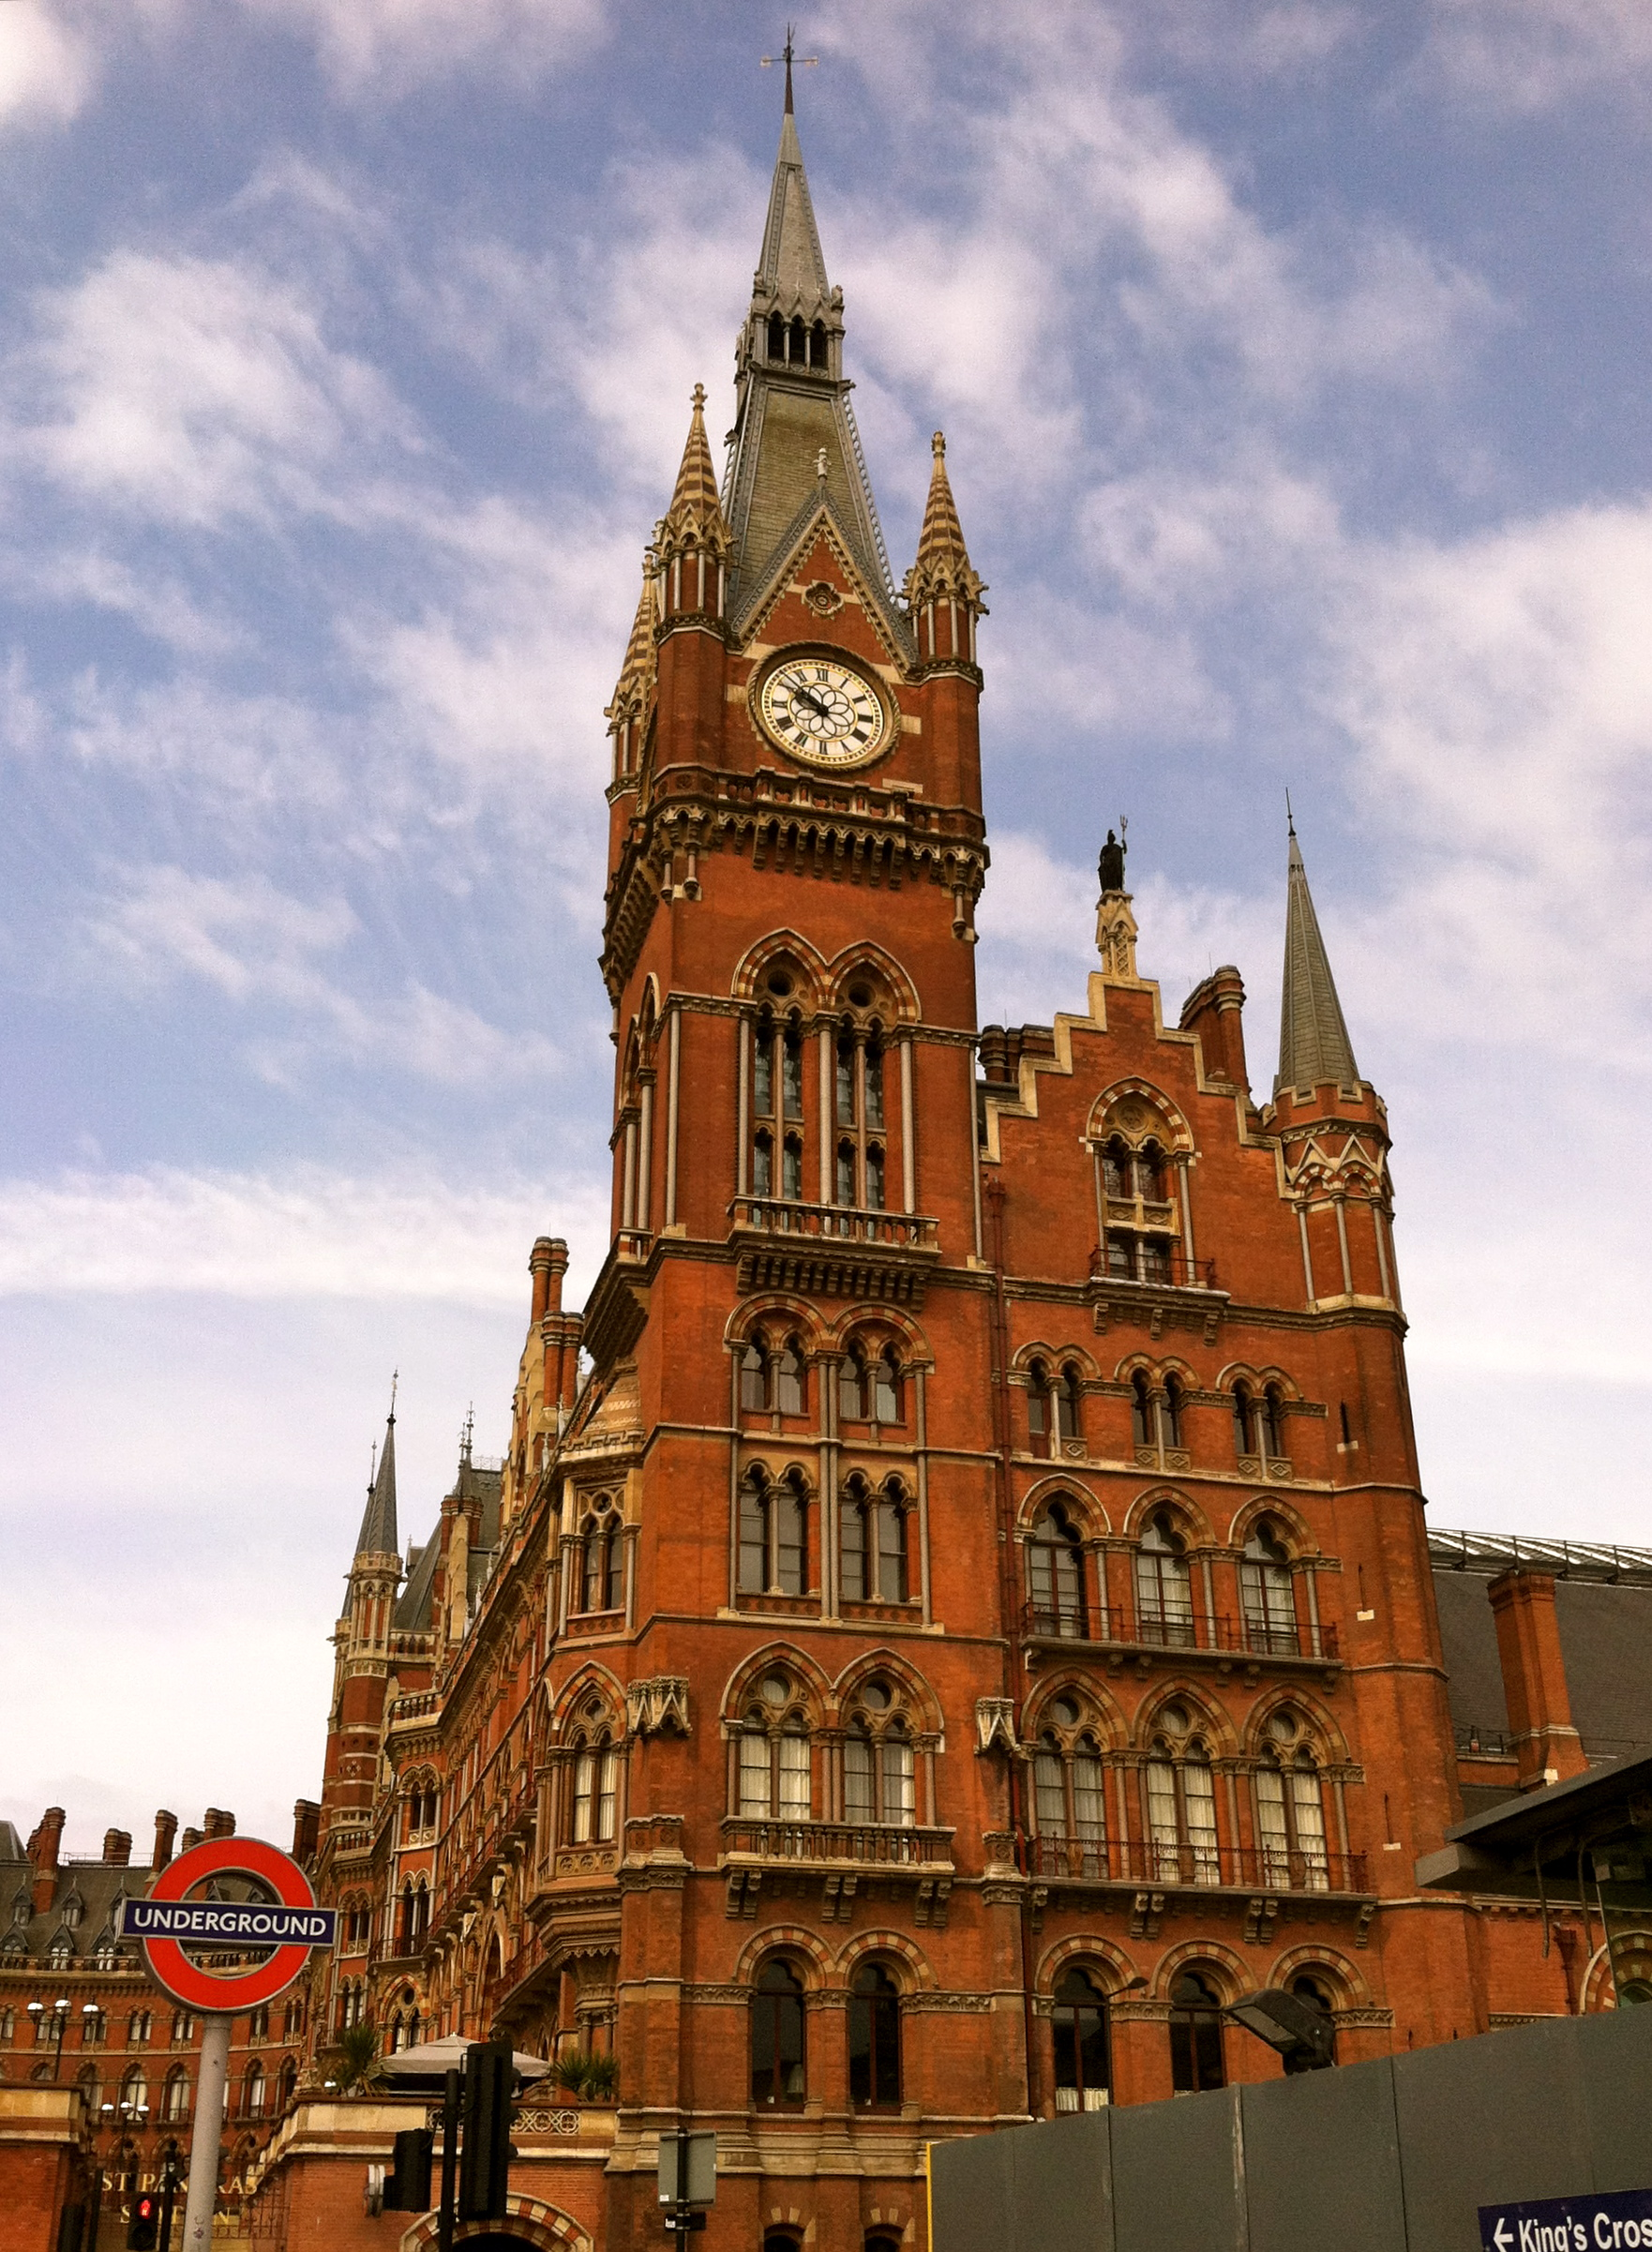 St. Pancras Renaissance London Hotel. Apparently, they used this hotel for Hogwarts in Harry Potter